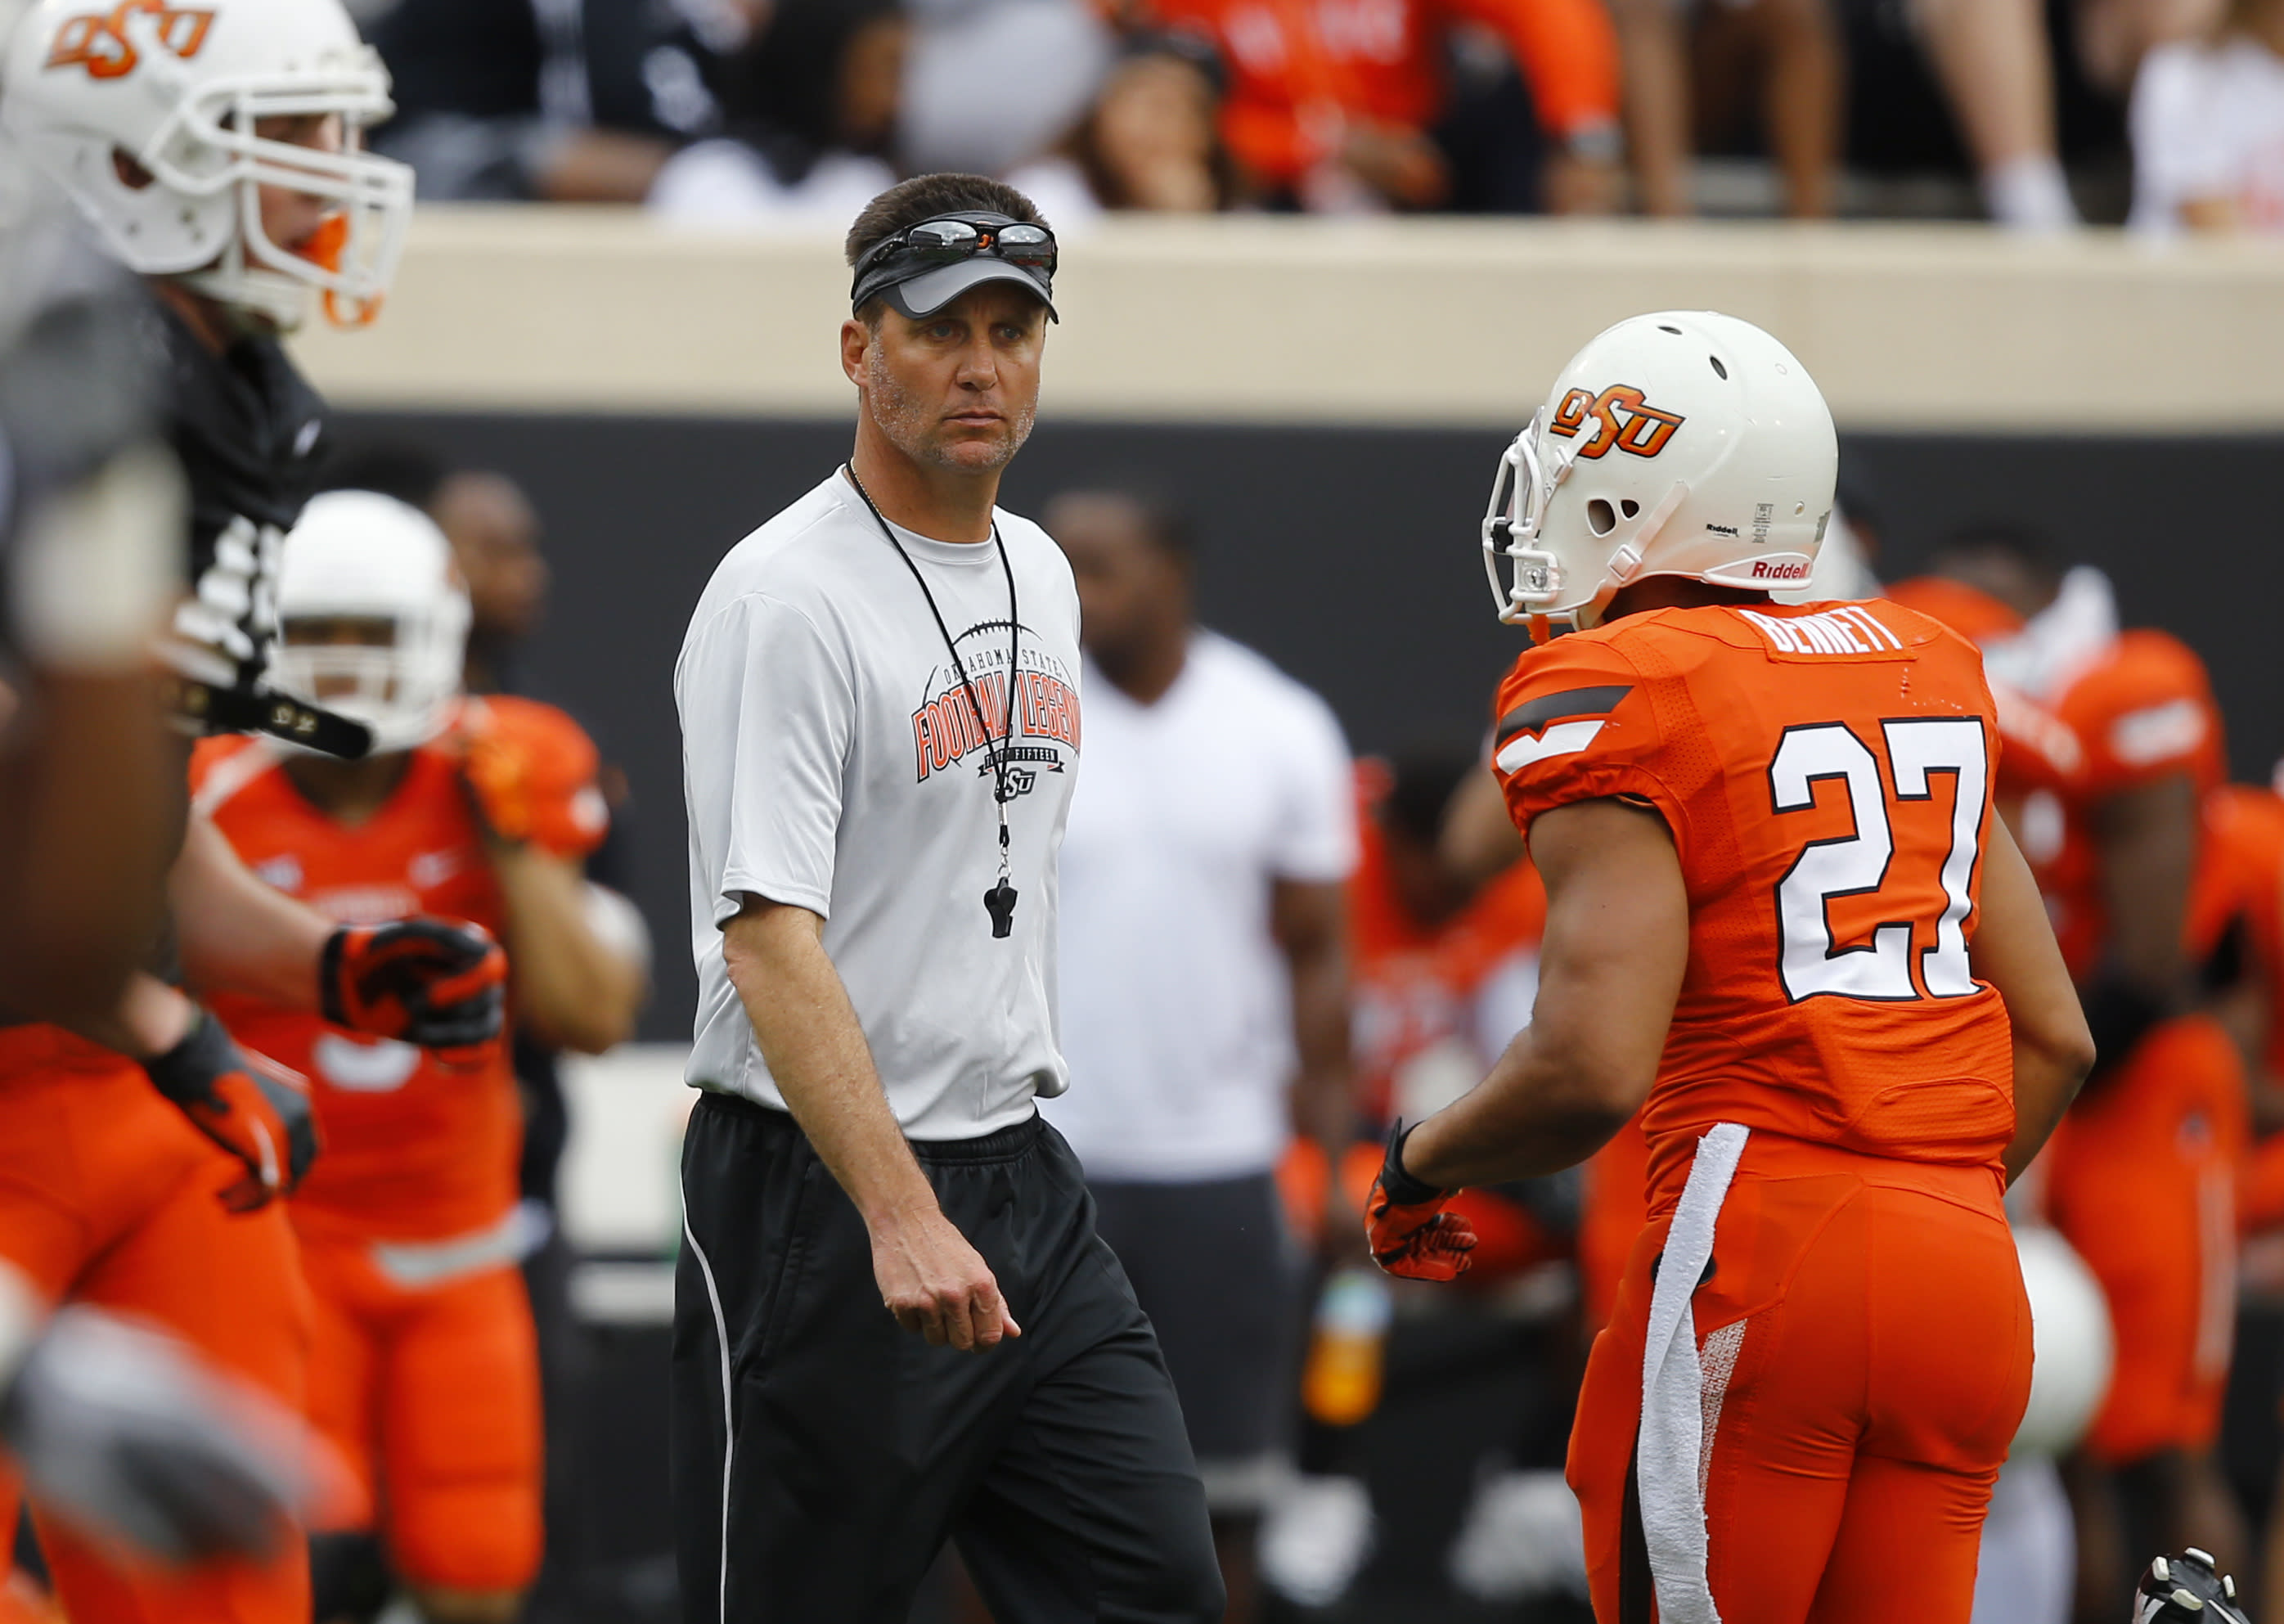 NCAA puts Oklahoma St on probation for infractions